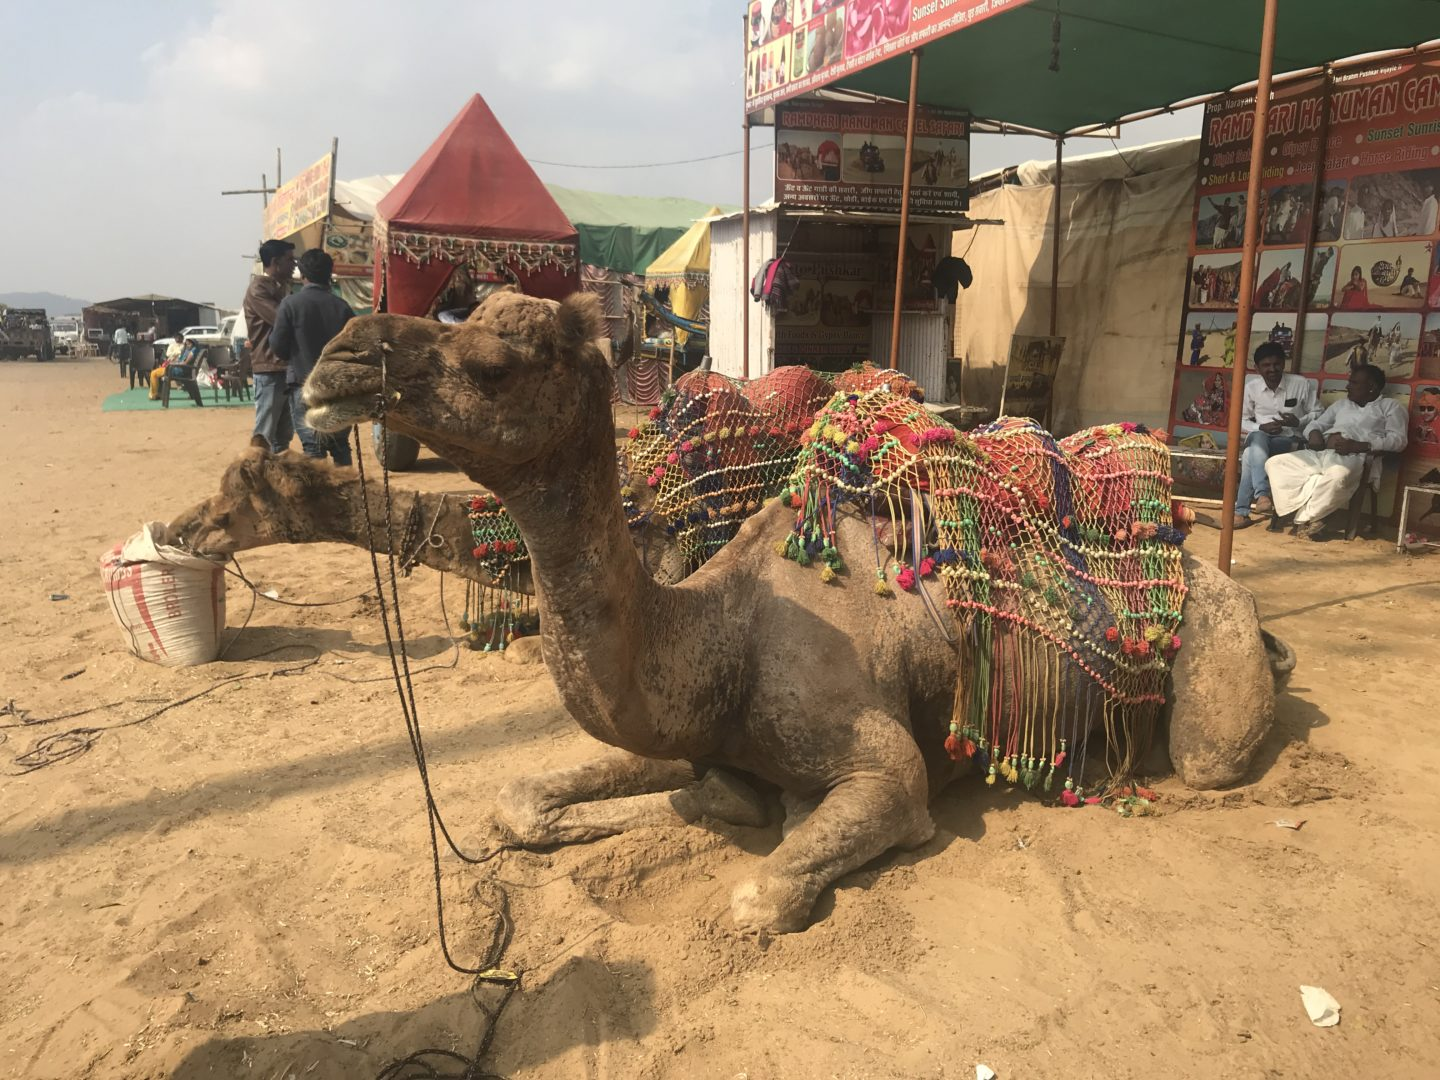 A FIRST TIMER'S GUIDE TO PUSHKAR, RAJASTHAN